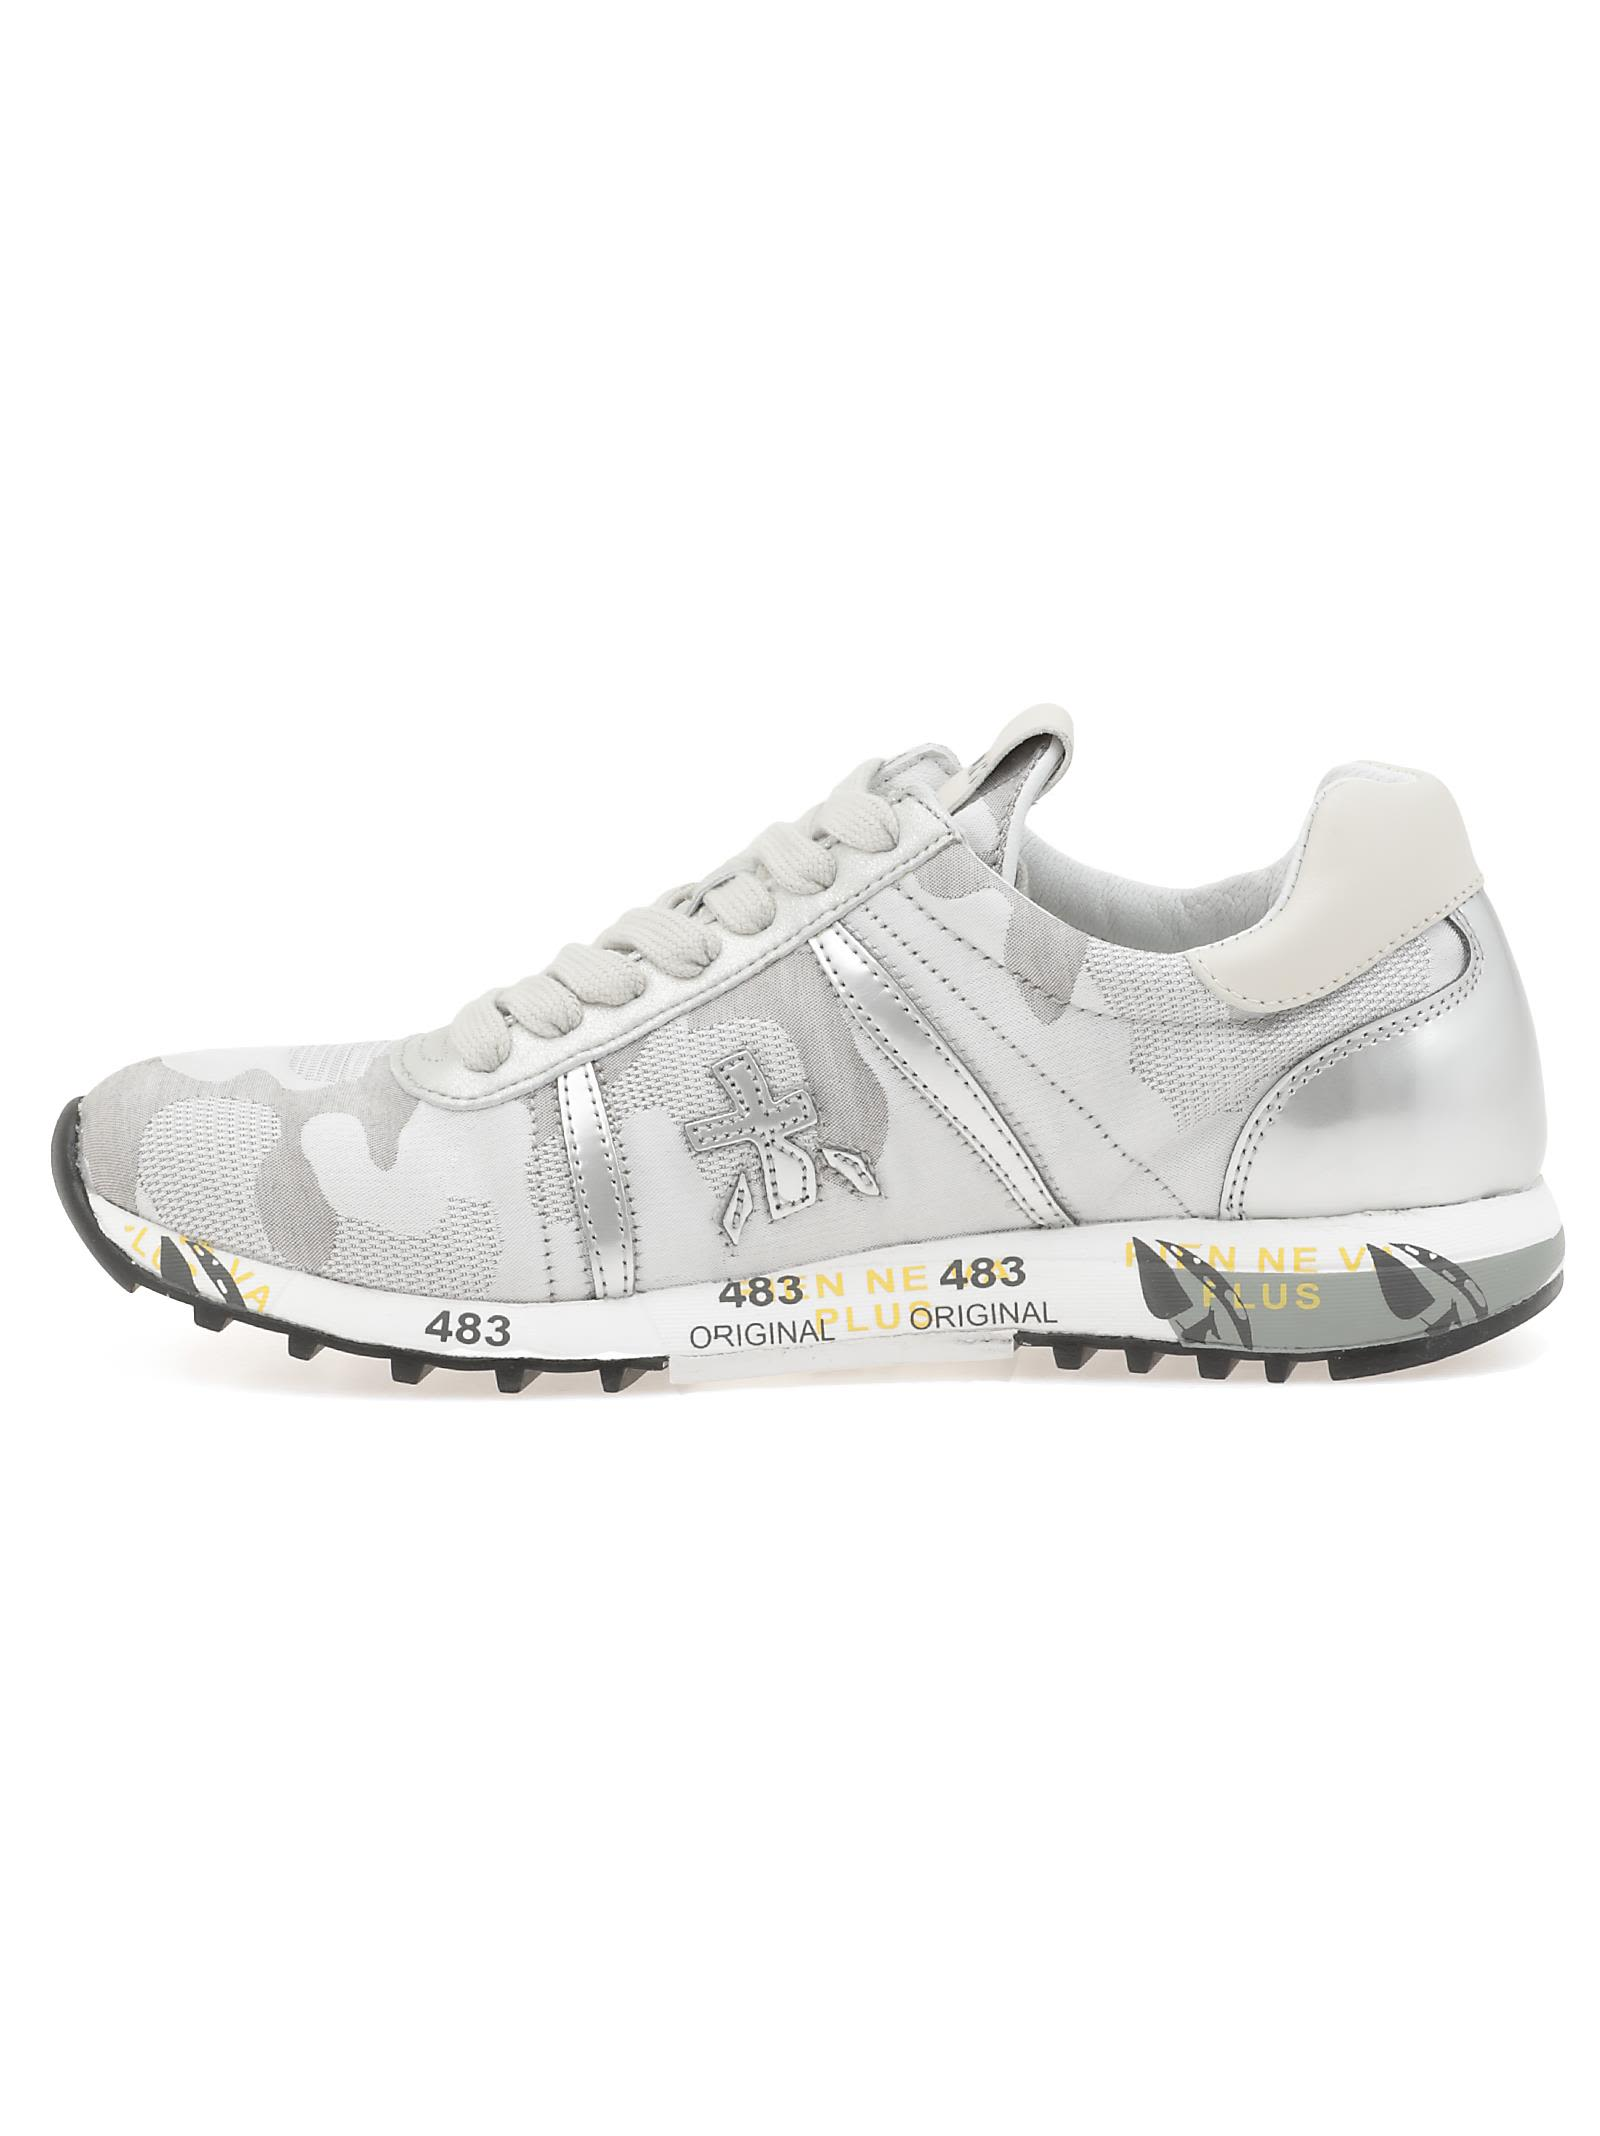 White Premiata Lucy D 2951 Sneaker Release Dates Store For Sale Cheap Sale Outlet wVs7yudk